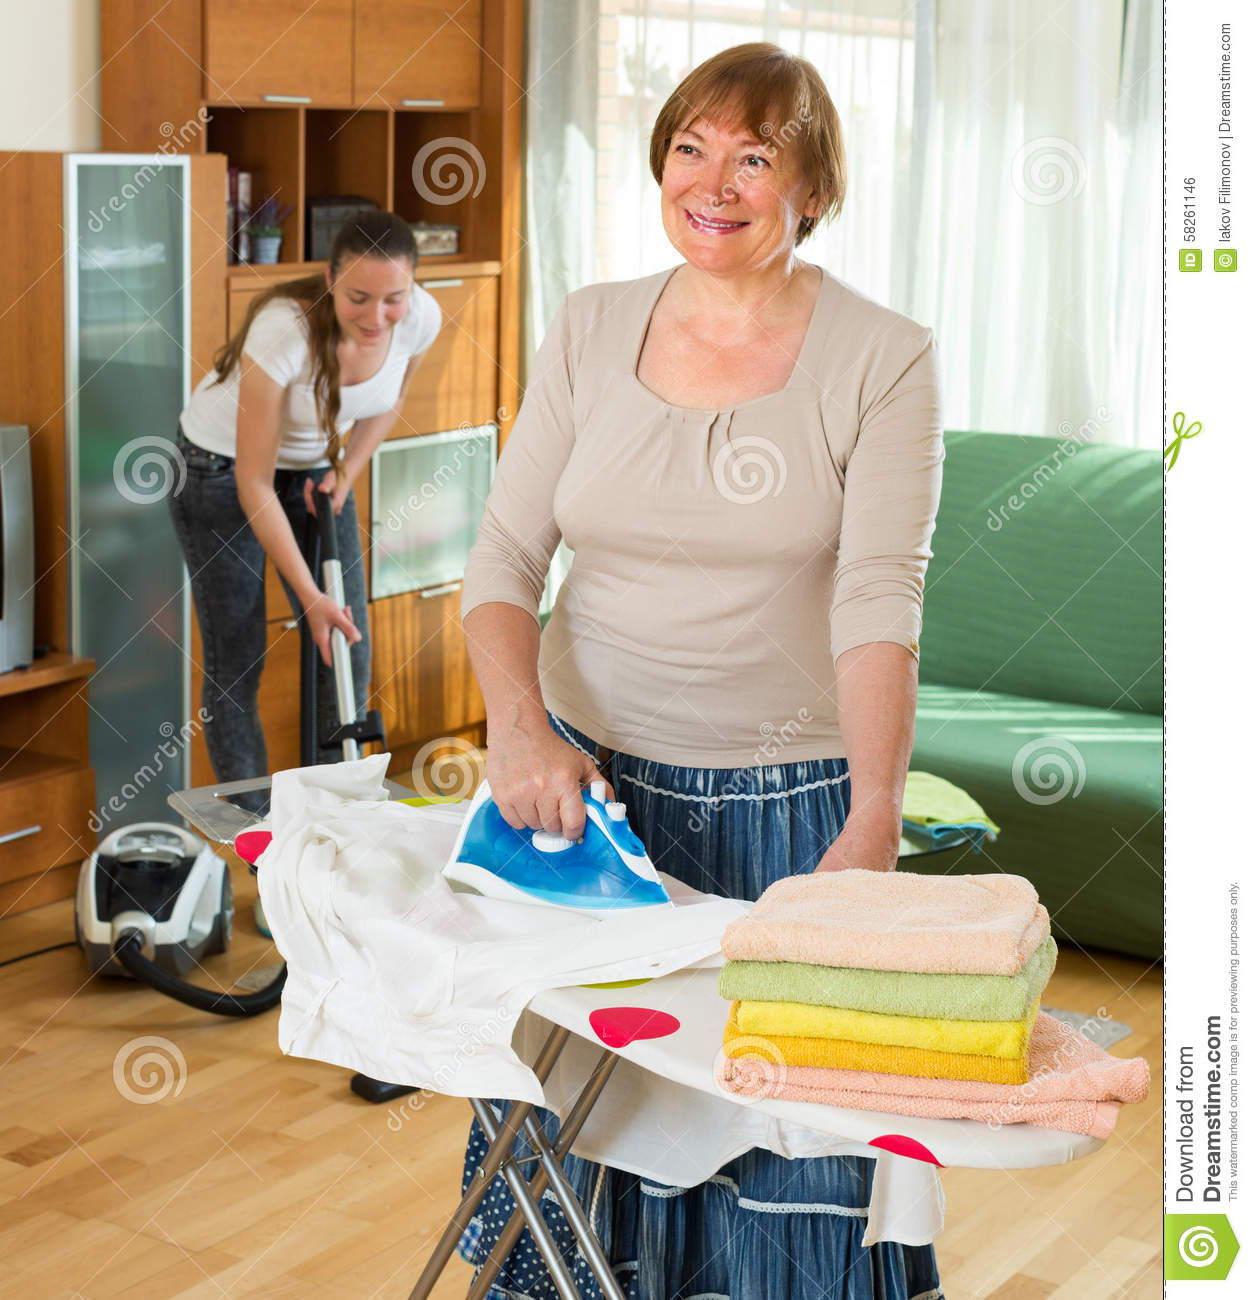 b358a40de4 Mature Woman And Girl Cleaning At Home Stock Photo - Image of living ...